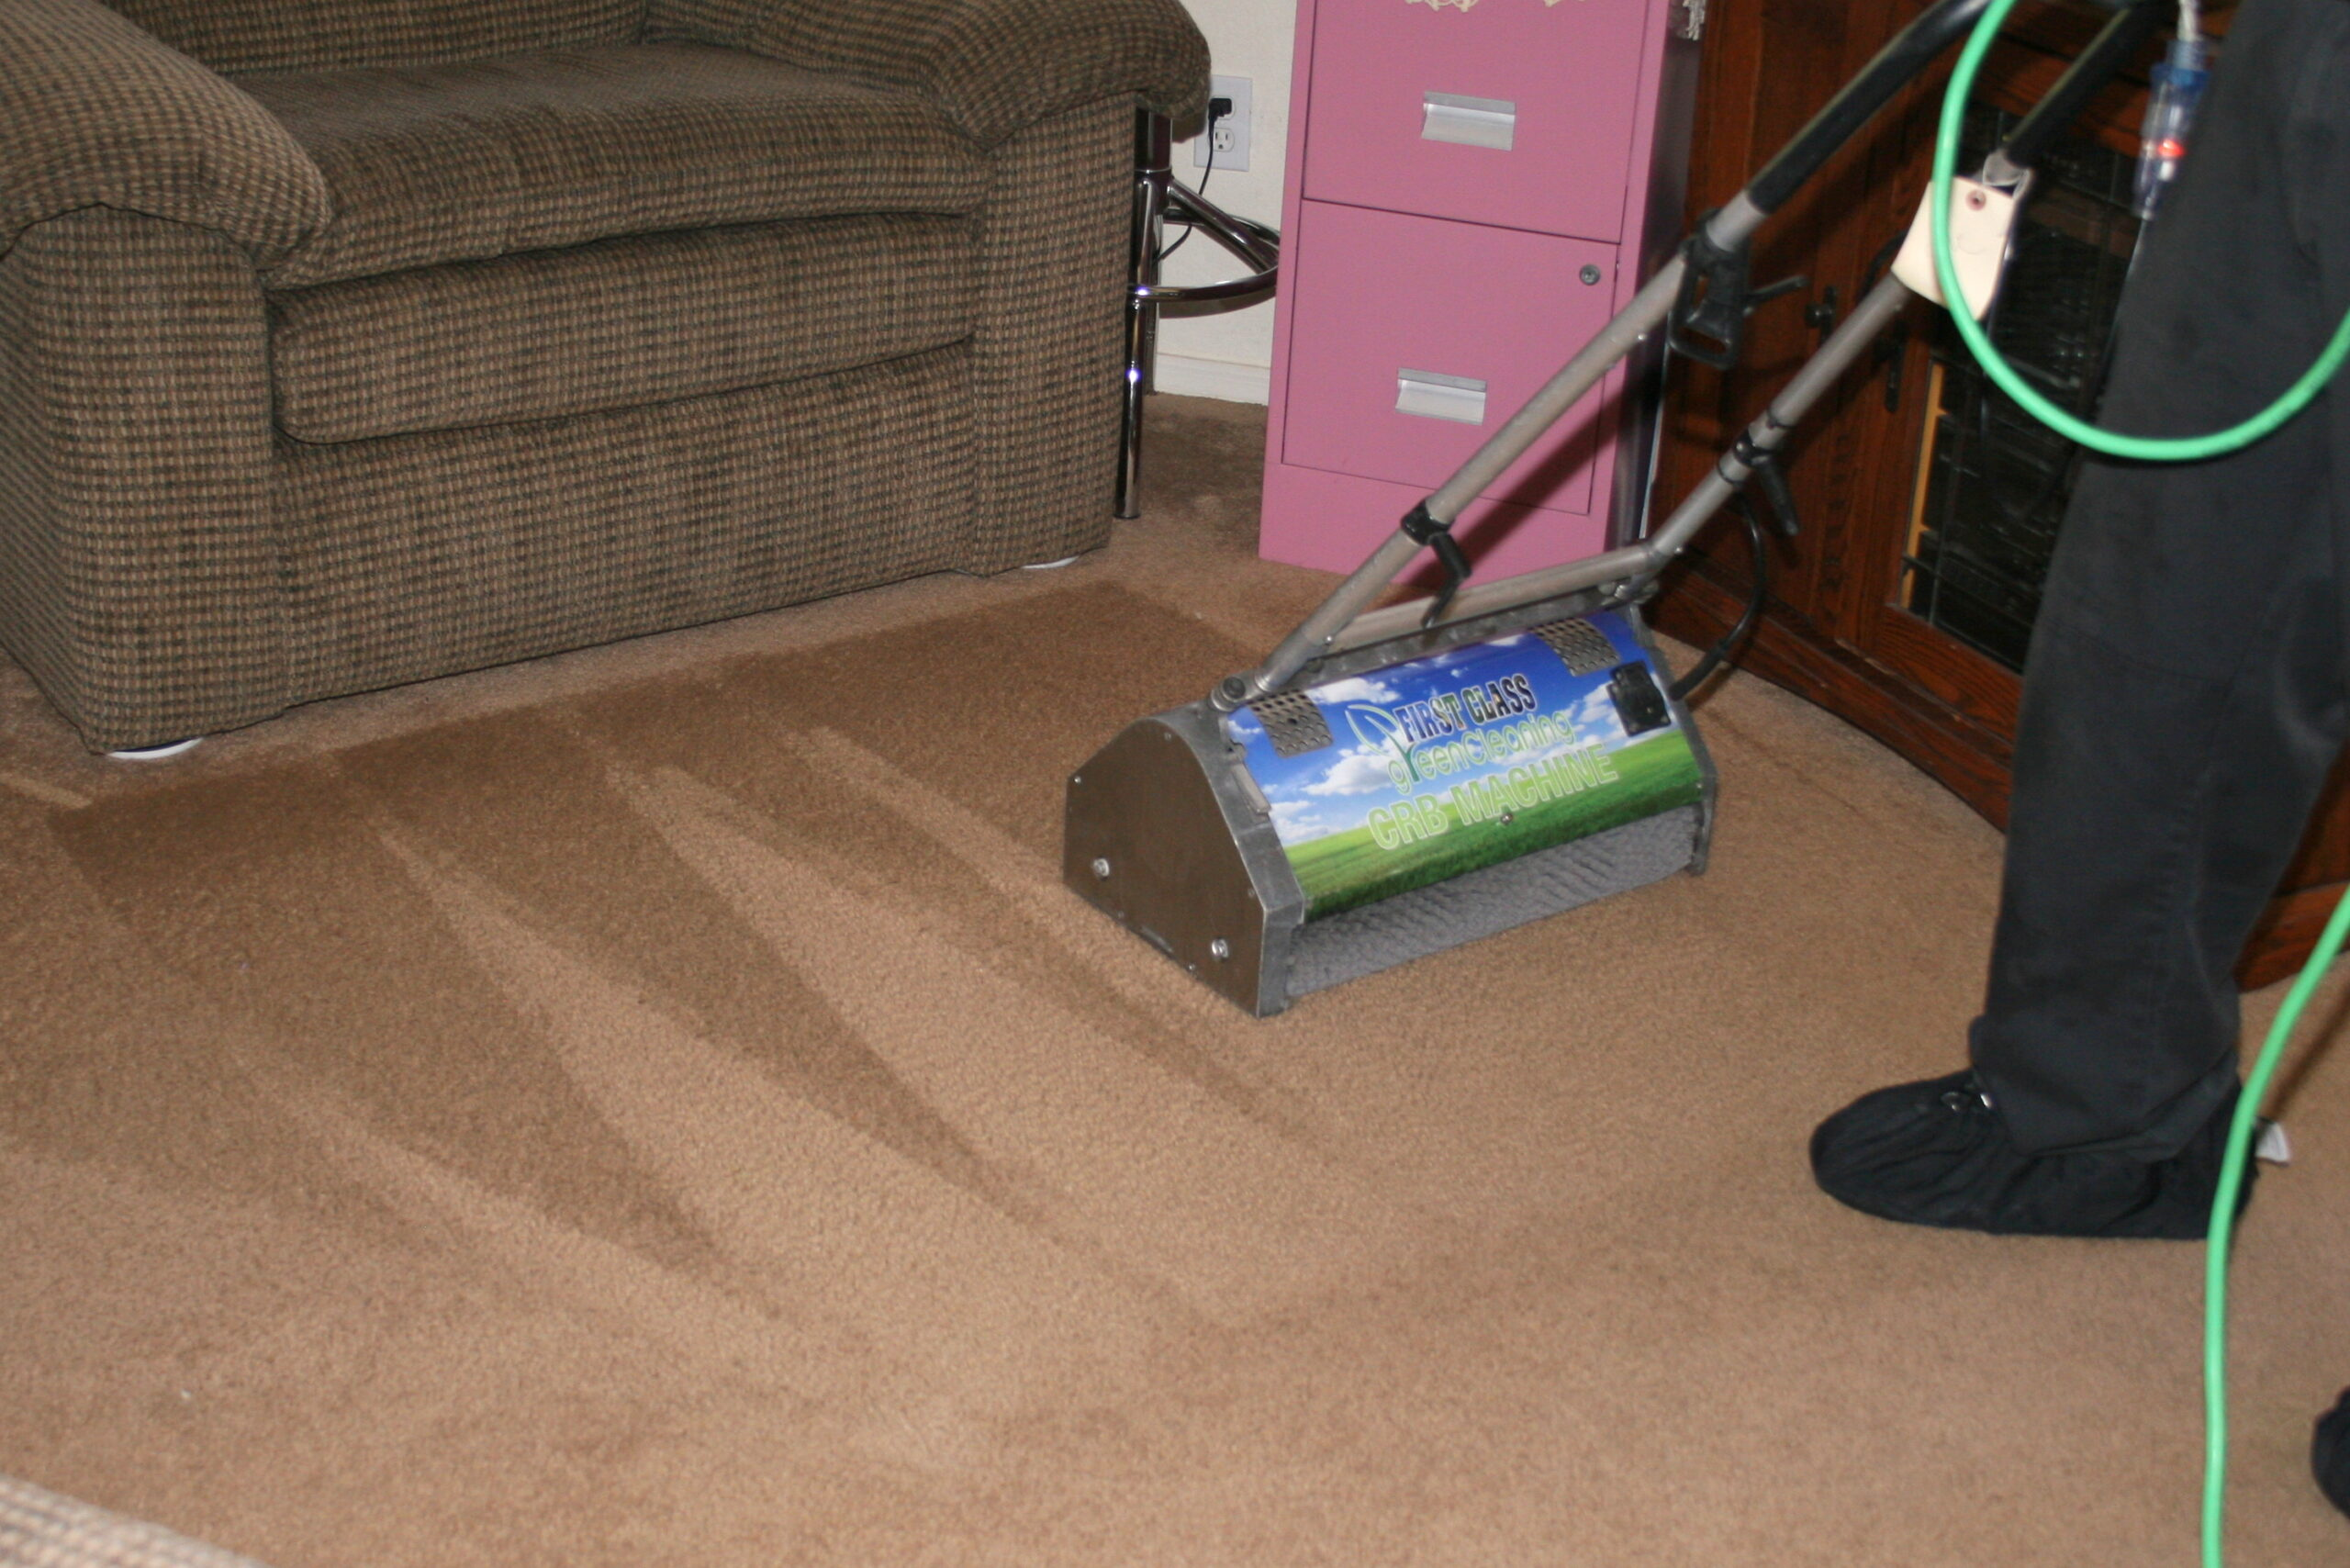 Residential and commercial interior cleaning in Phoenix by First Glass Green Cleaning showing carpet cleaning machine